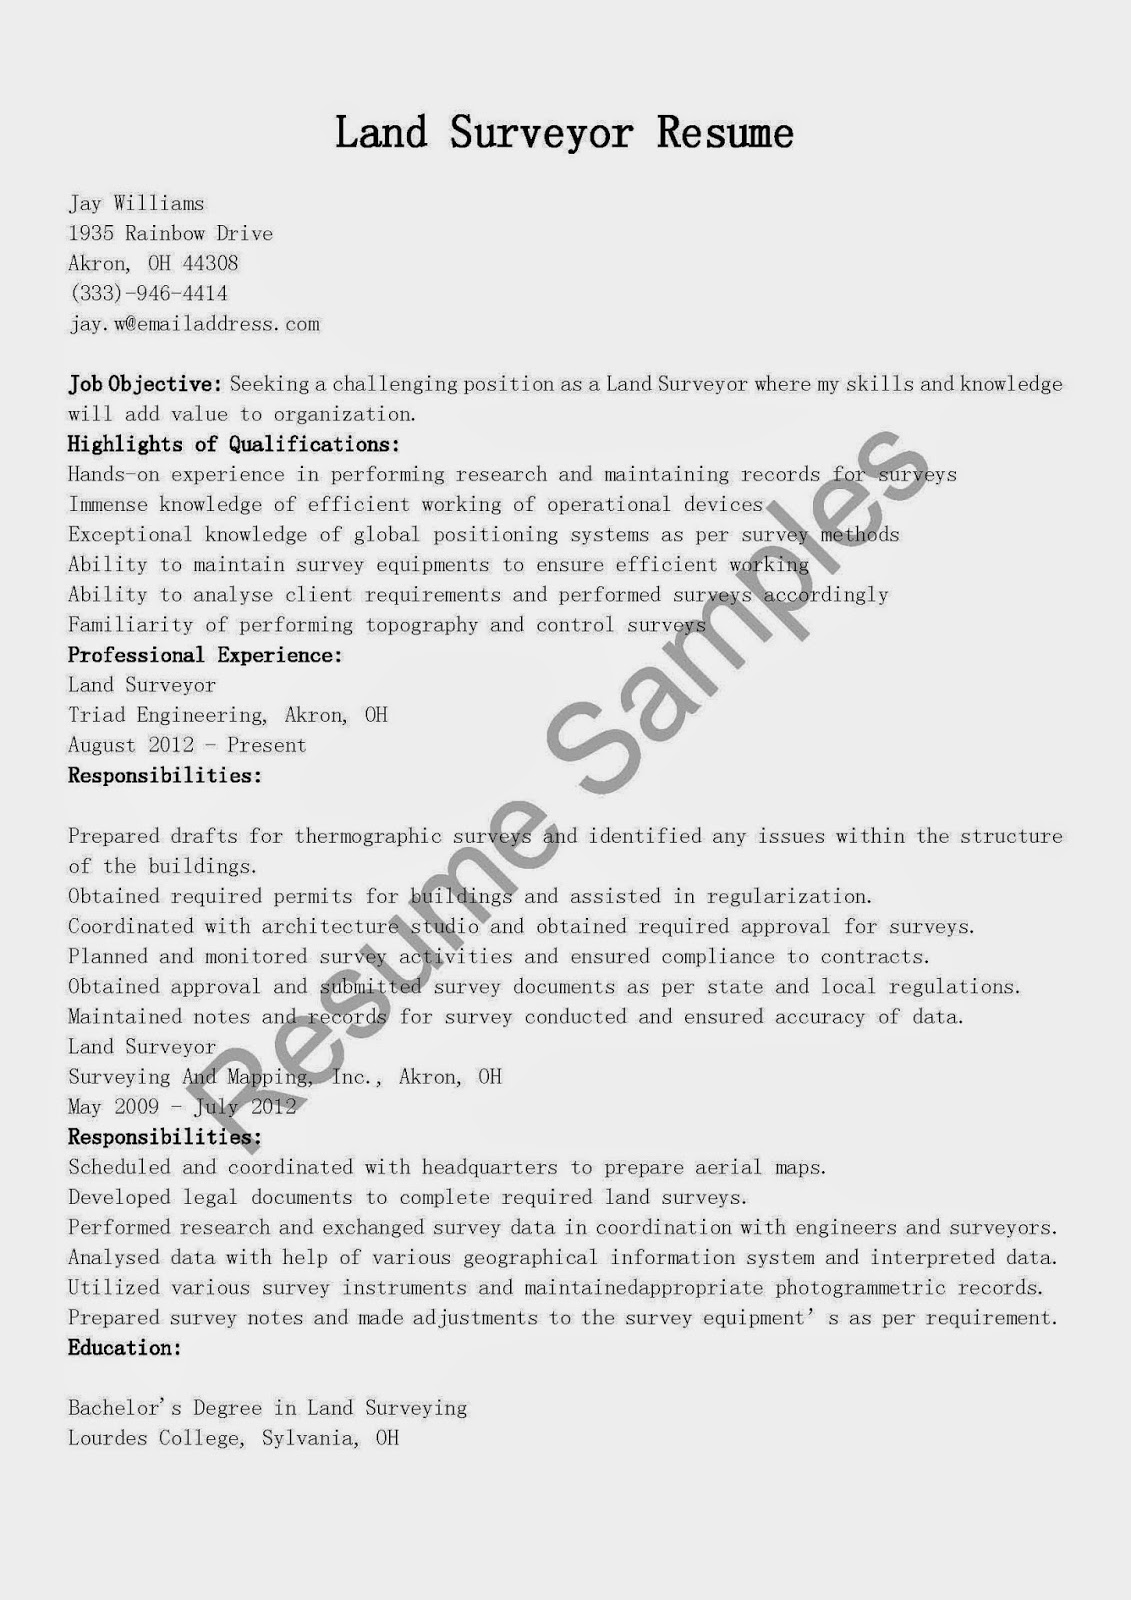 resume samples  land surveyor resume sample